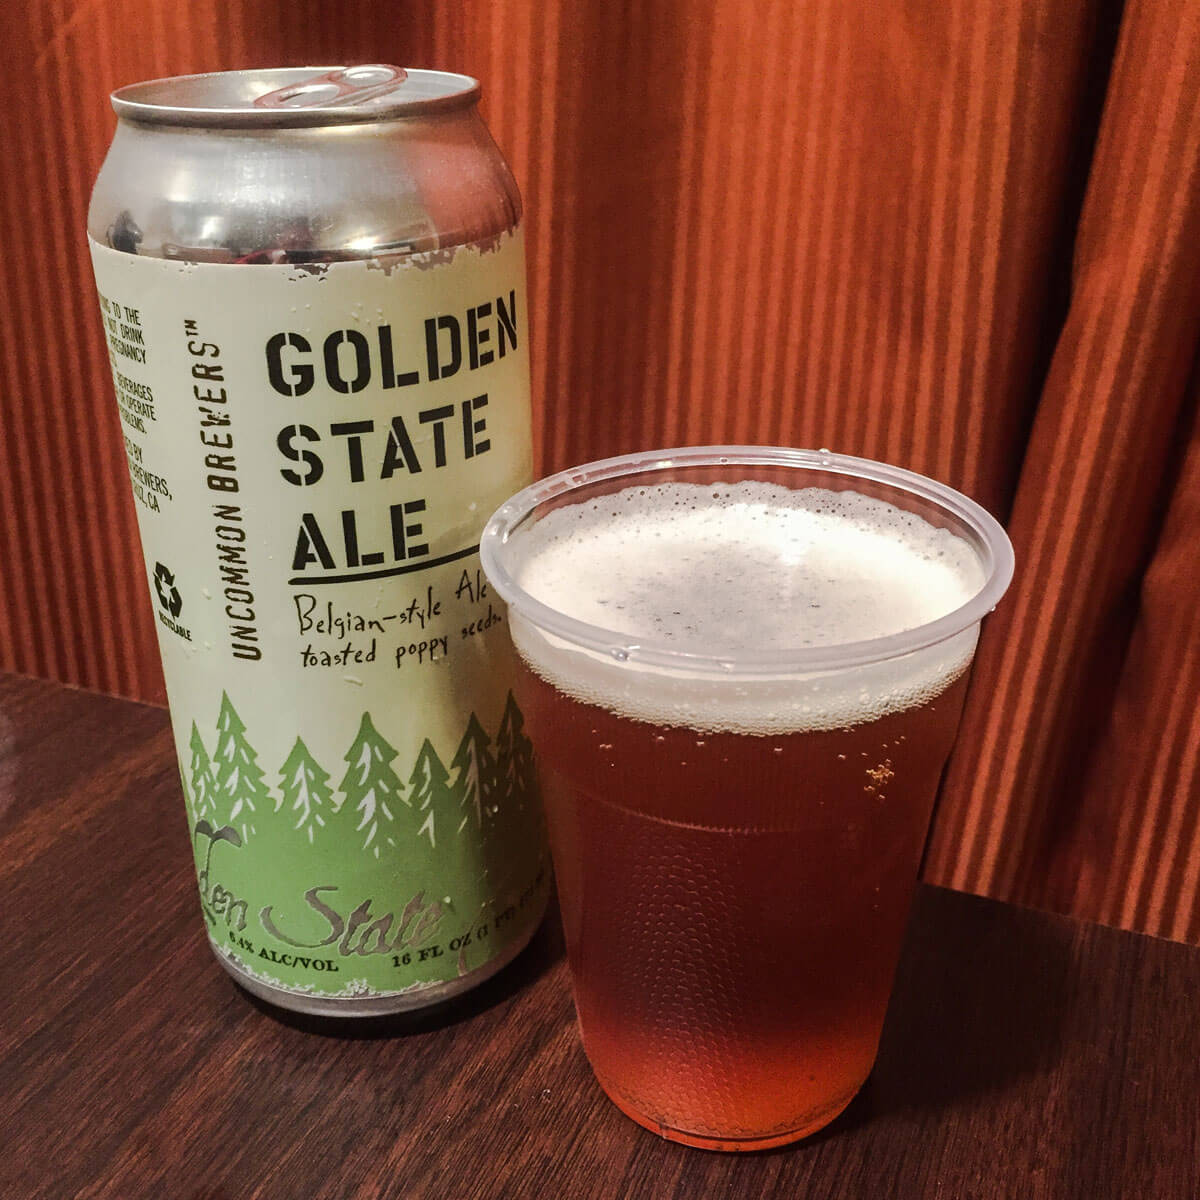 Golden State Ale, a Belgian-style Pale Ale by Uncommon Brewers